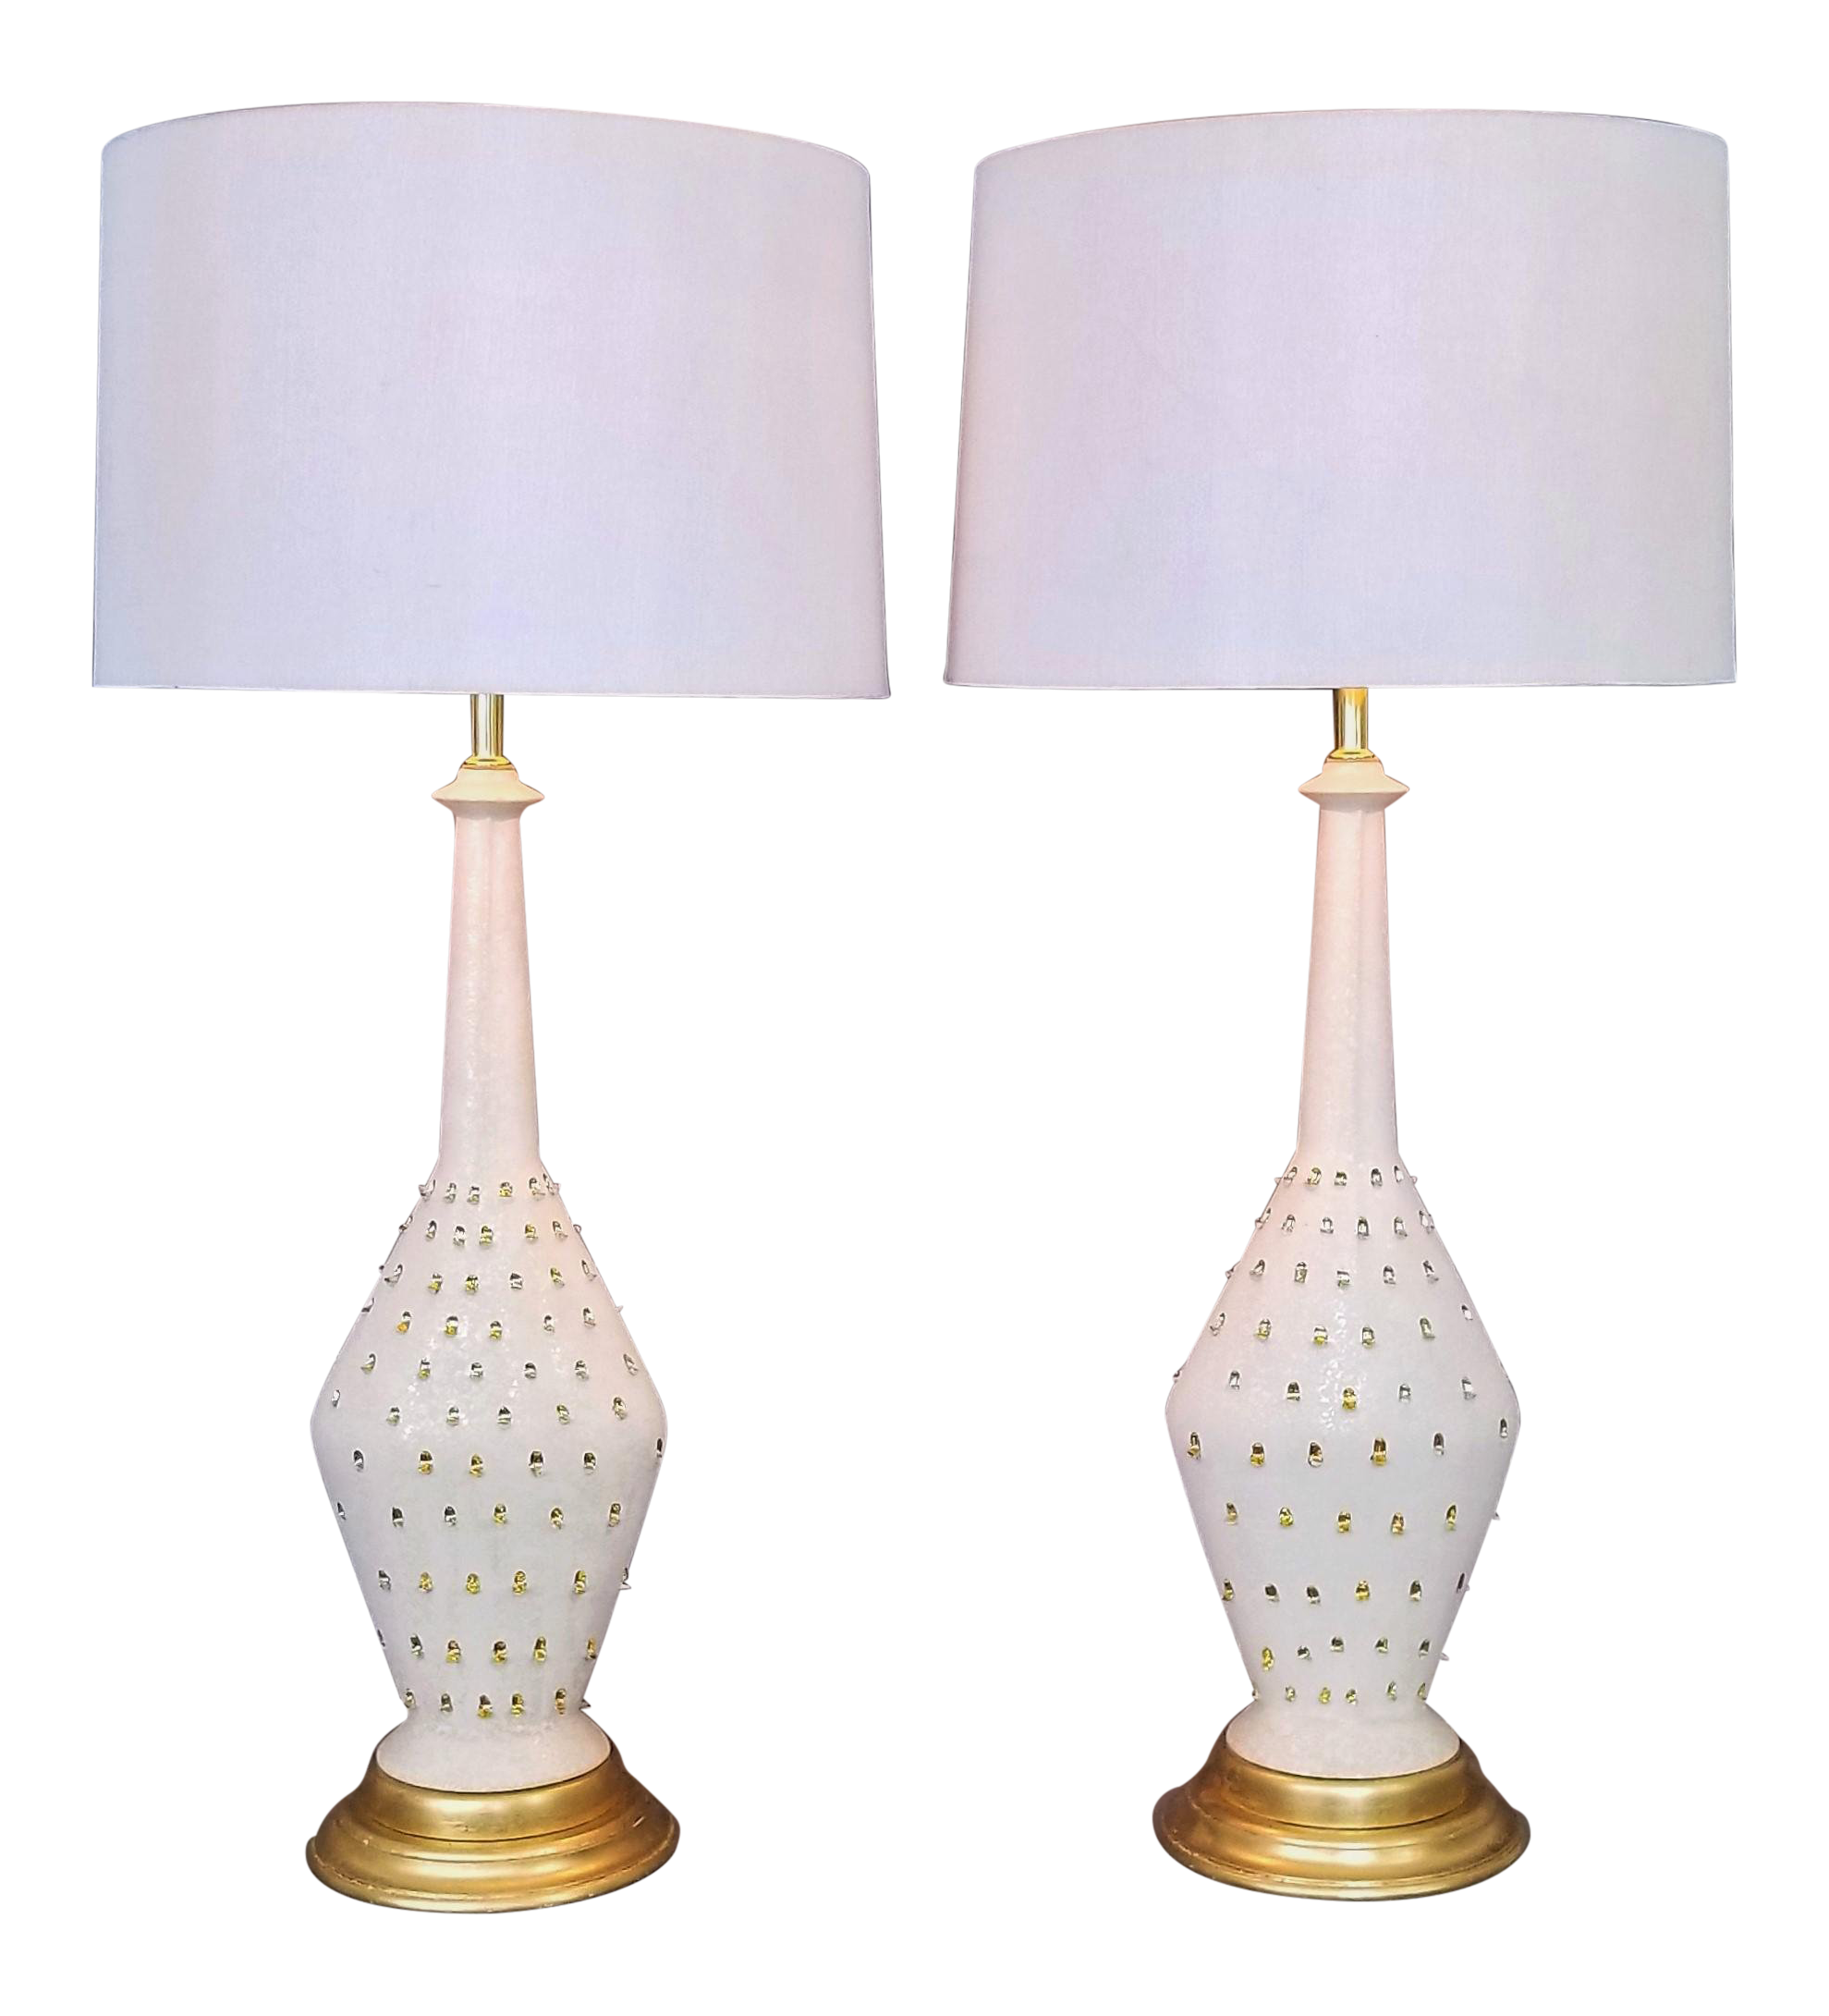 1957 Ceramic Table Lamps By Tye Of California A Pair Restored Gold Leaf